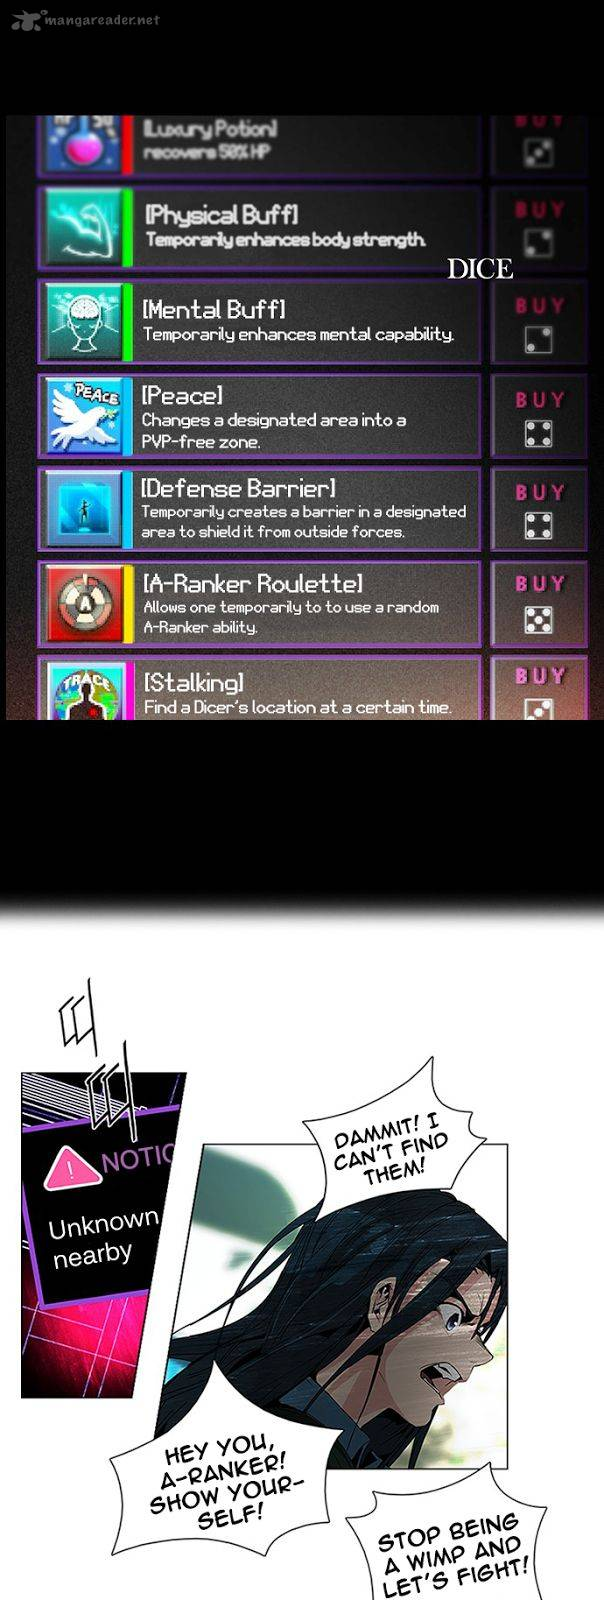 dice_the_cube_that_changes_everything_71_1